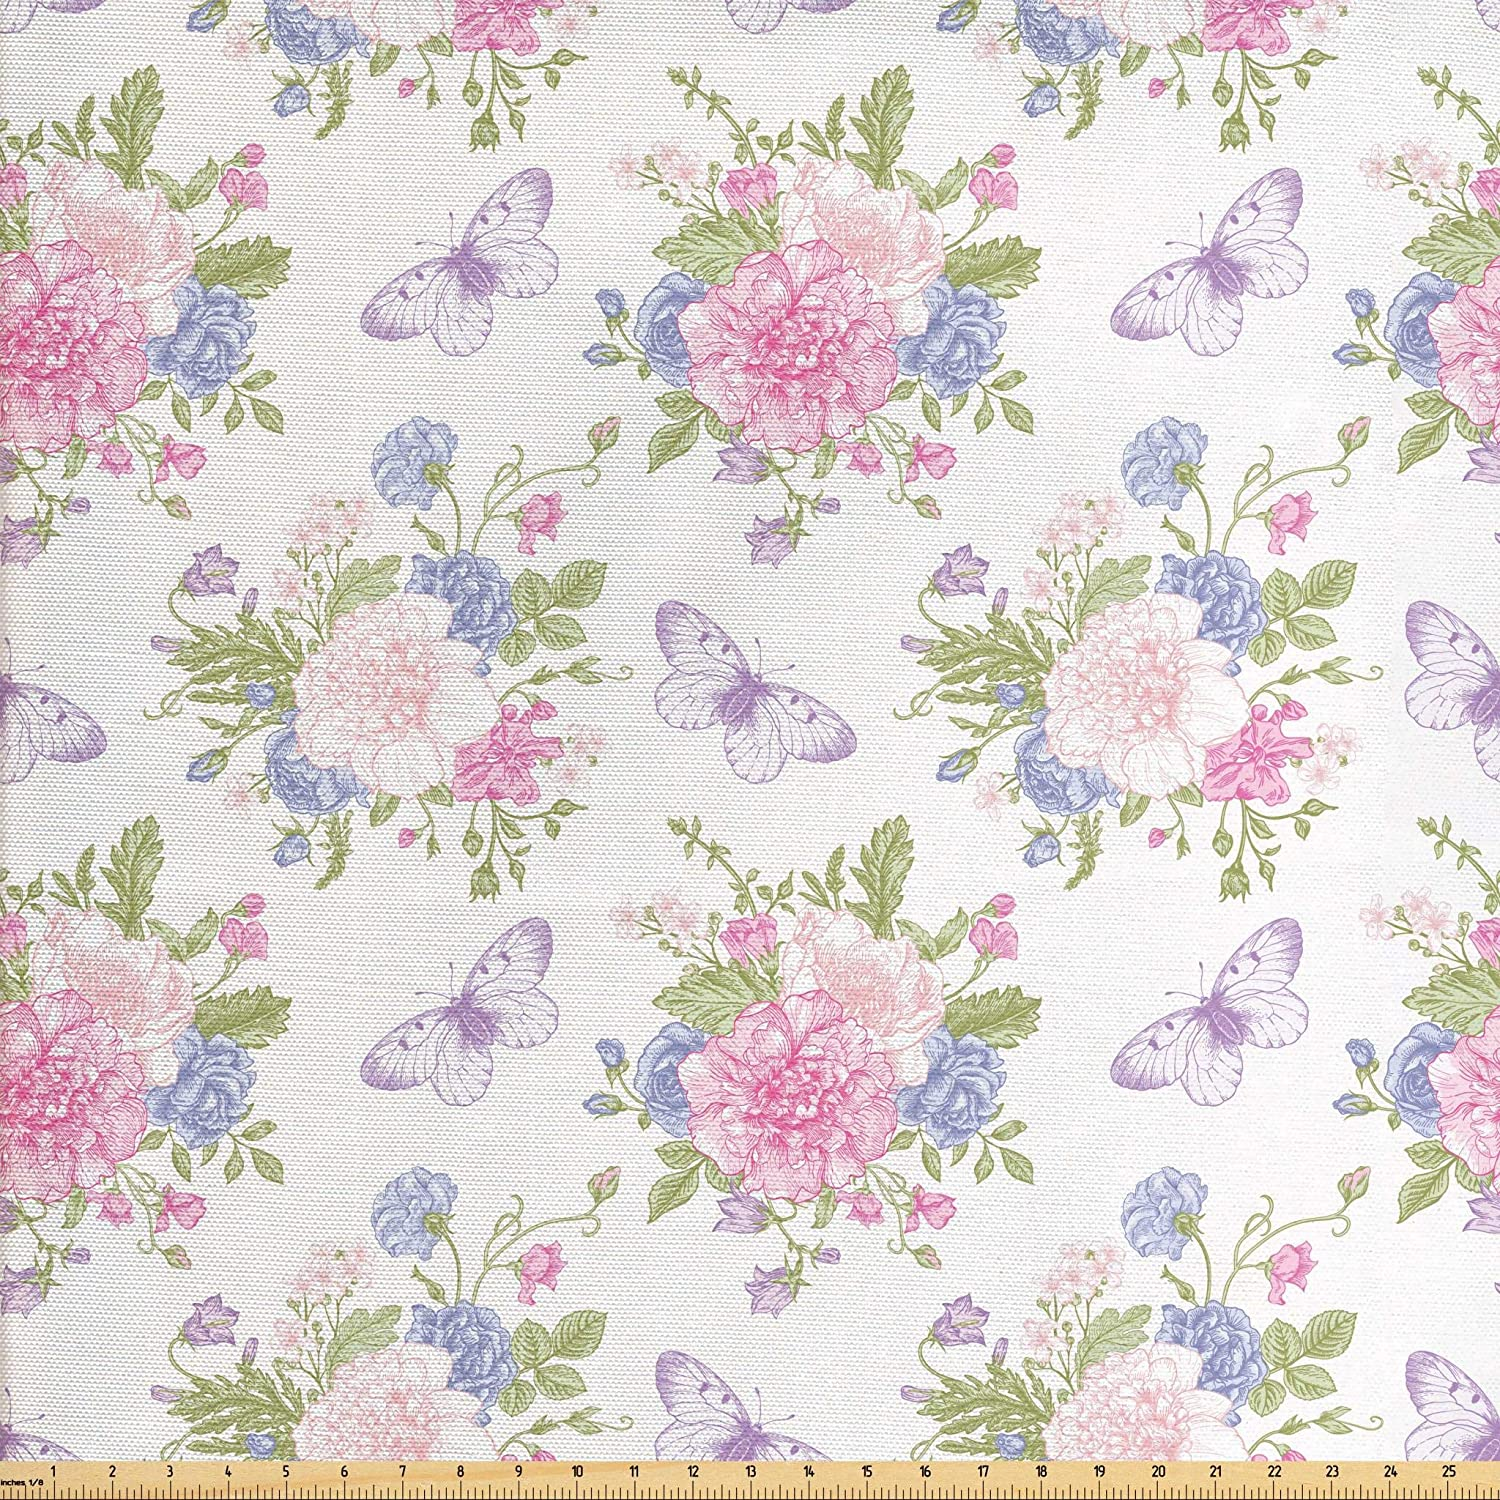 Lunarable Shabby Flora Fabric by The Yard, Flowers Floral Design with Buds and Butterflies Ivy Swirl Art, Decorative Fabric for Upholstery and Home Accents, 3 Yards, Pink Purple